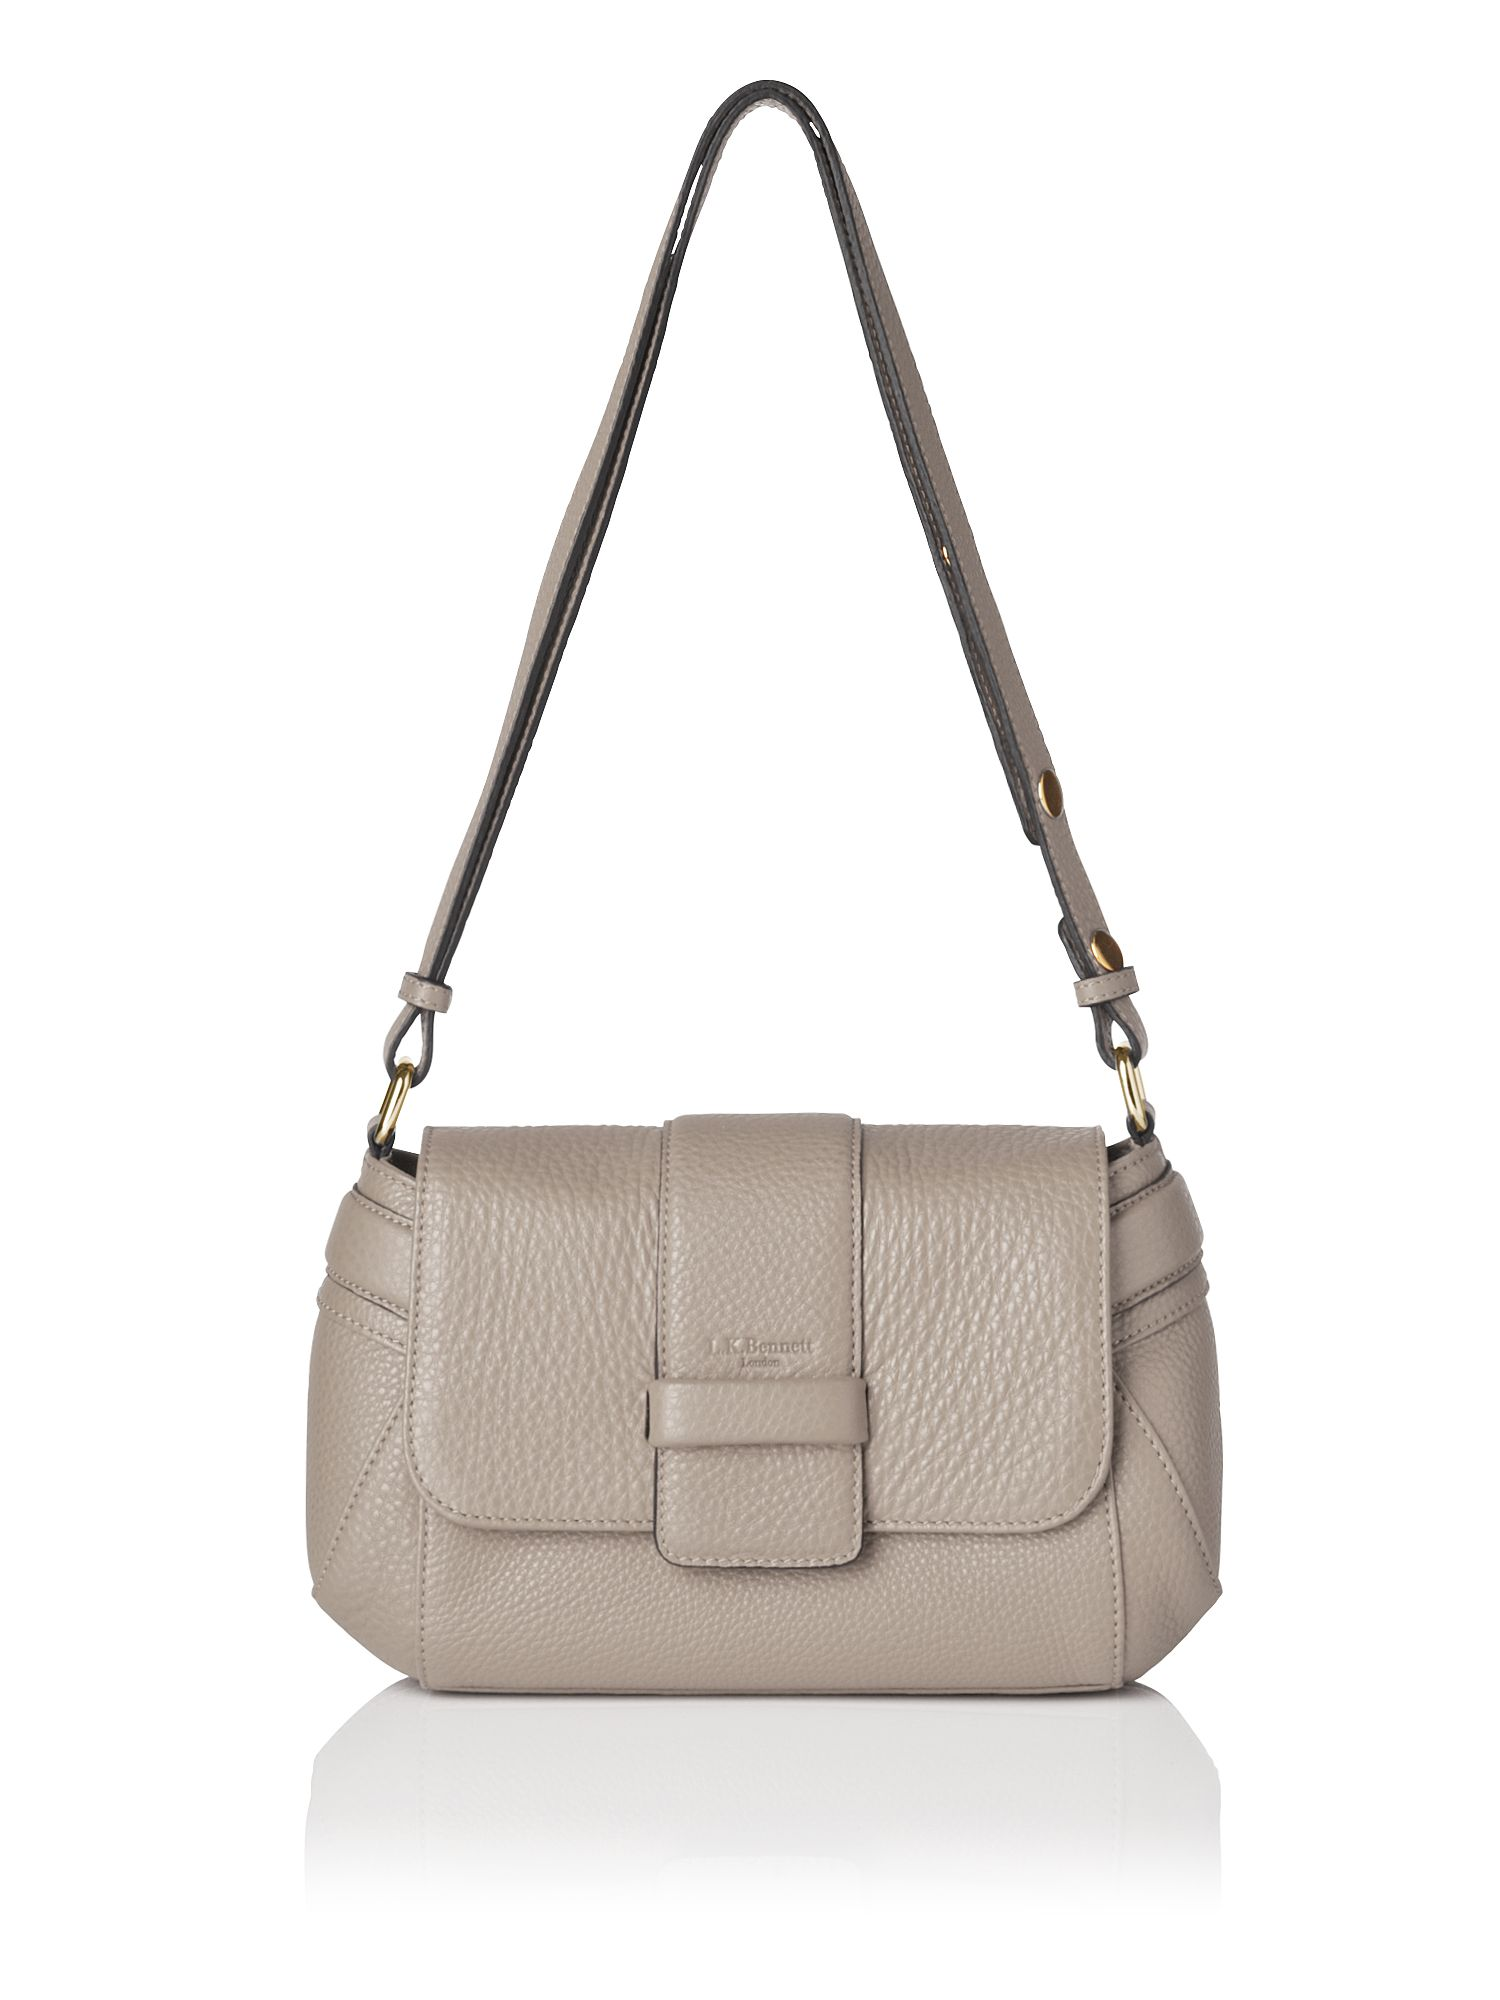 Mabel grained leather shoulder bag